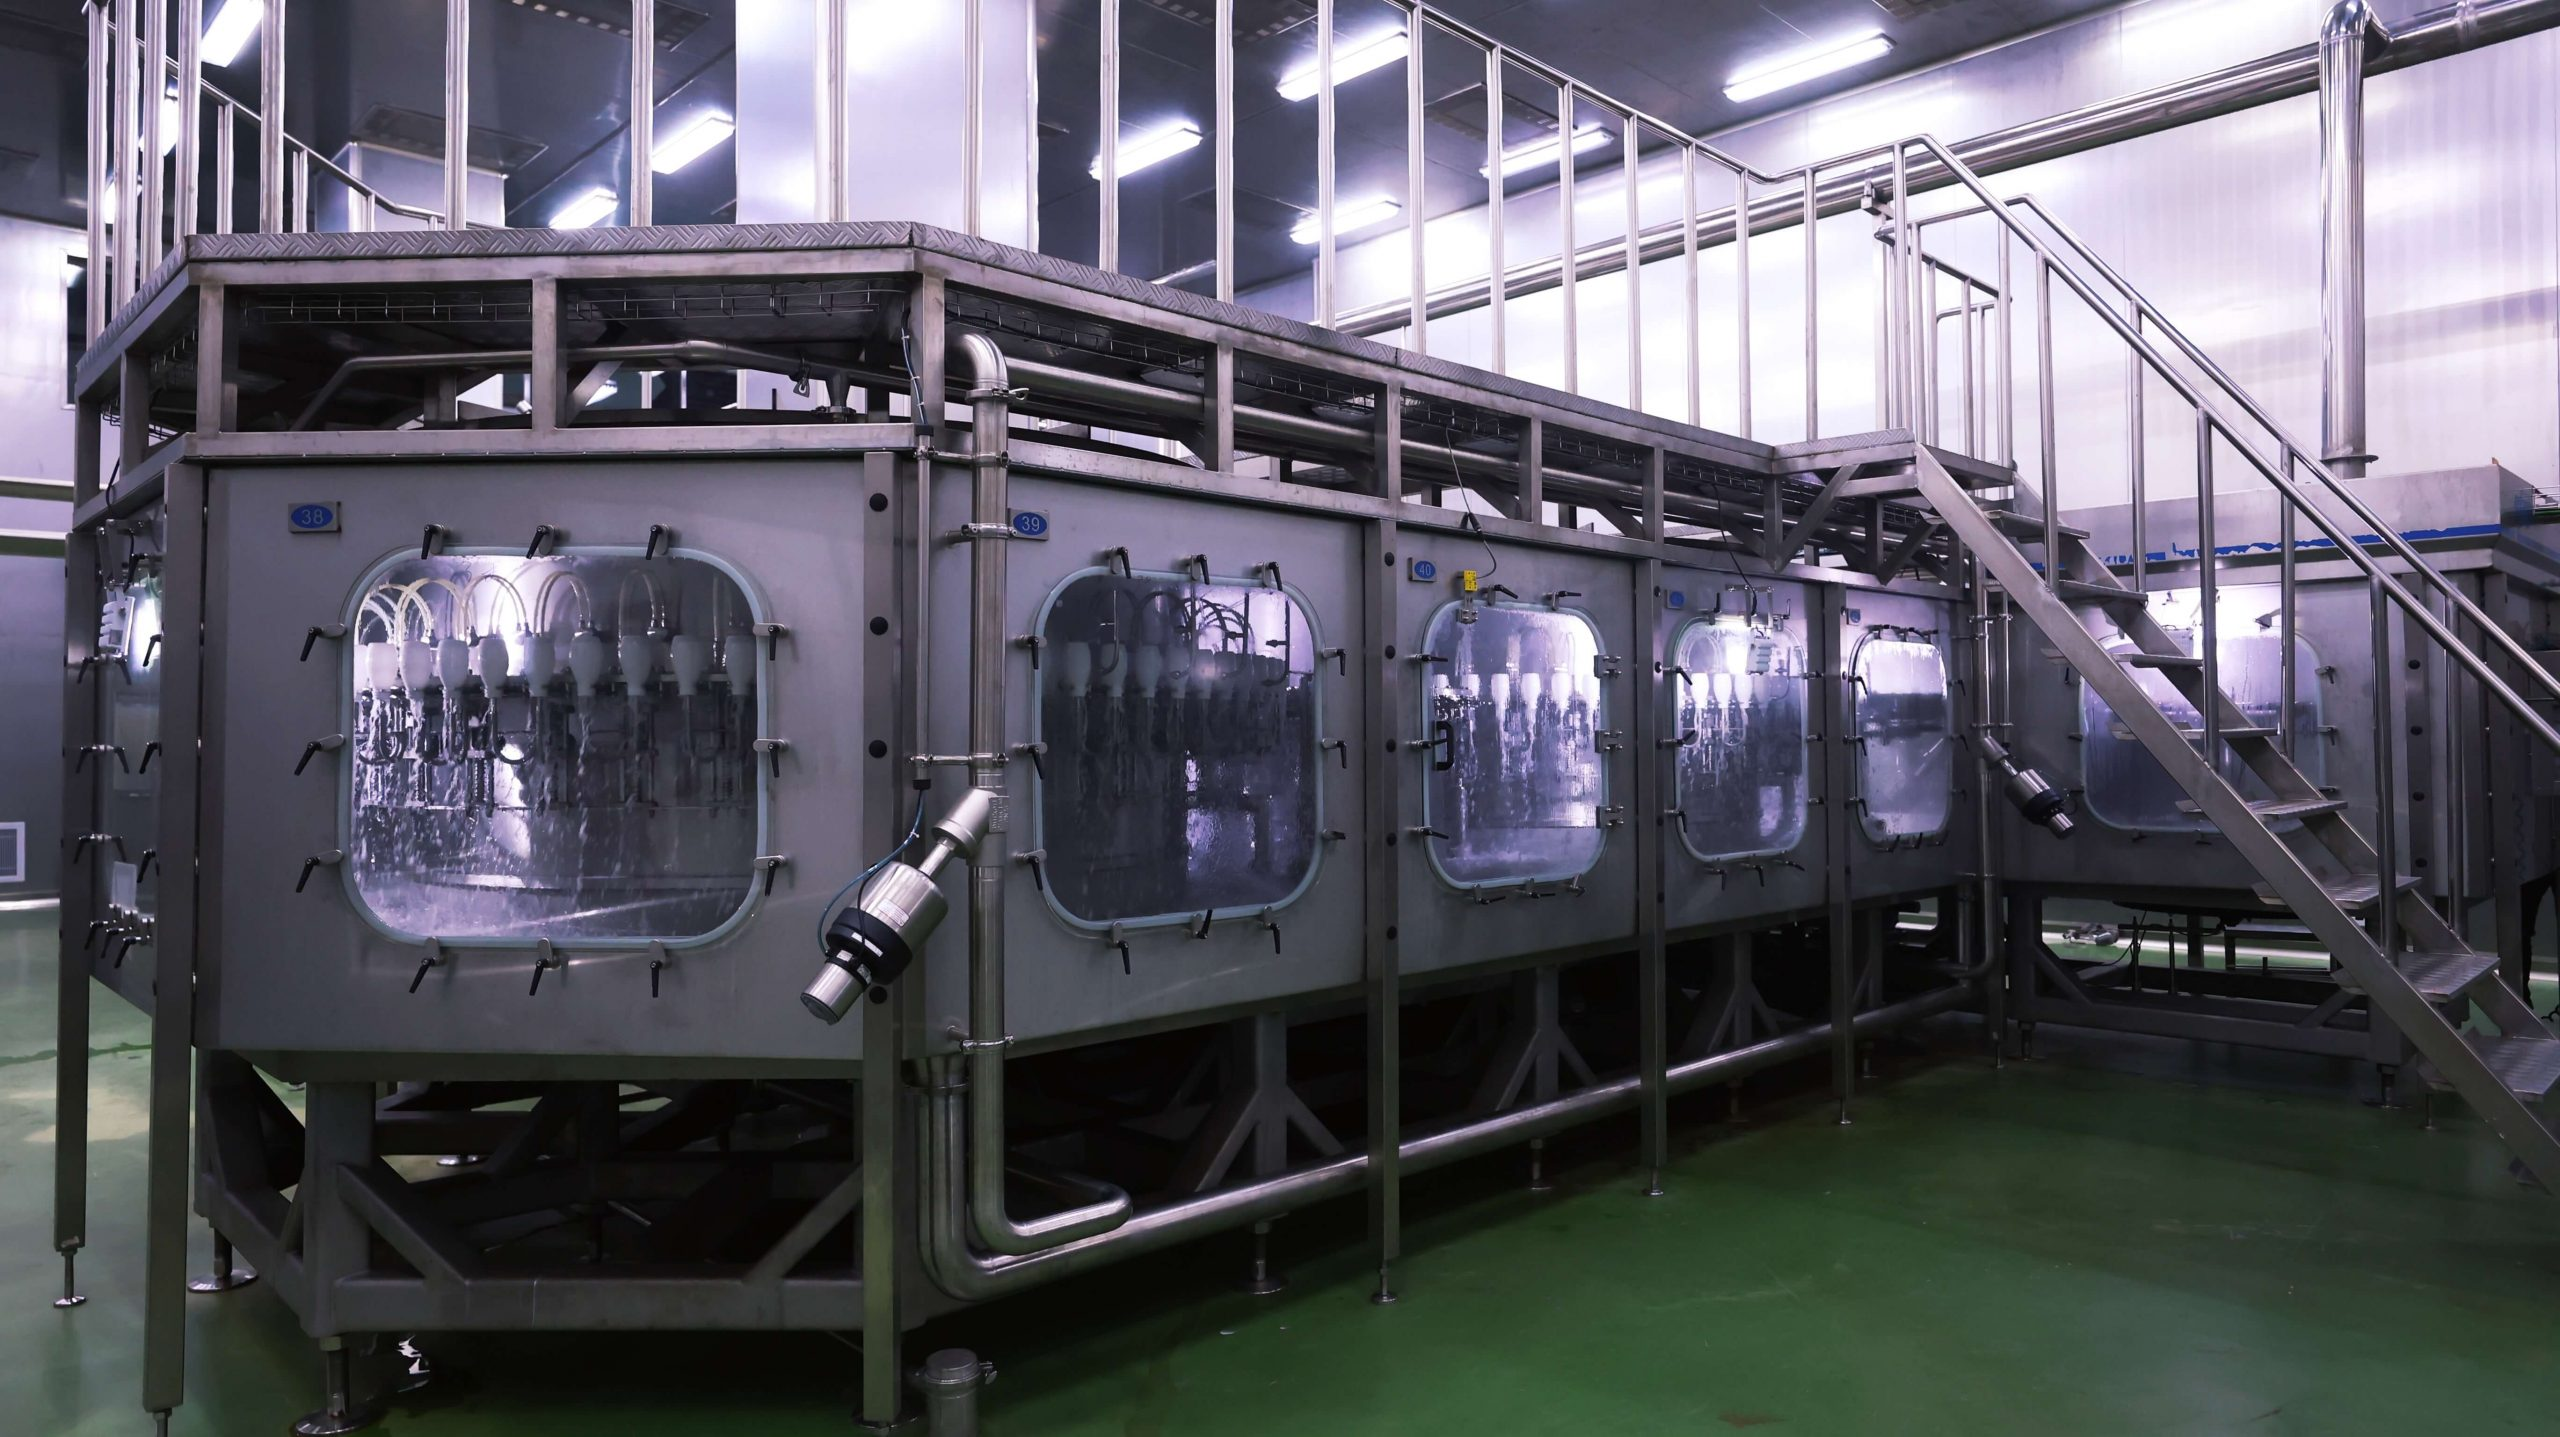 Cold Aseptic Filling | PHS PACKING | PLS | Cold Aseptic Filling Technology